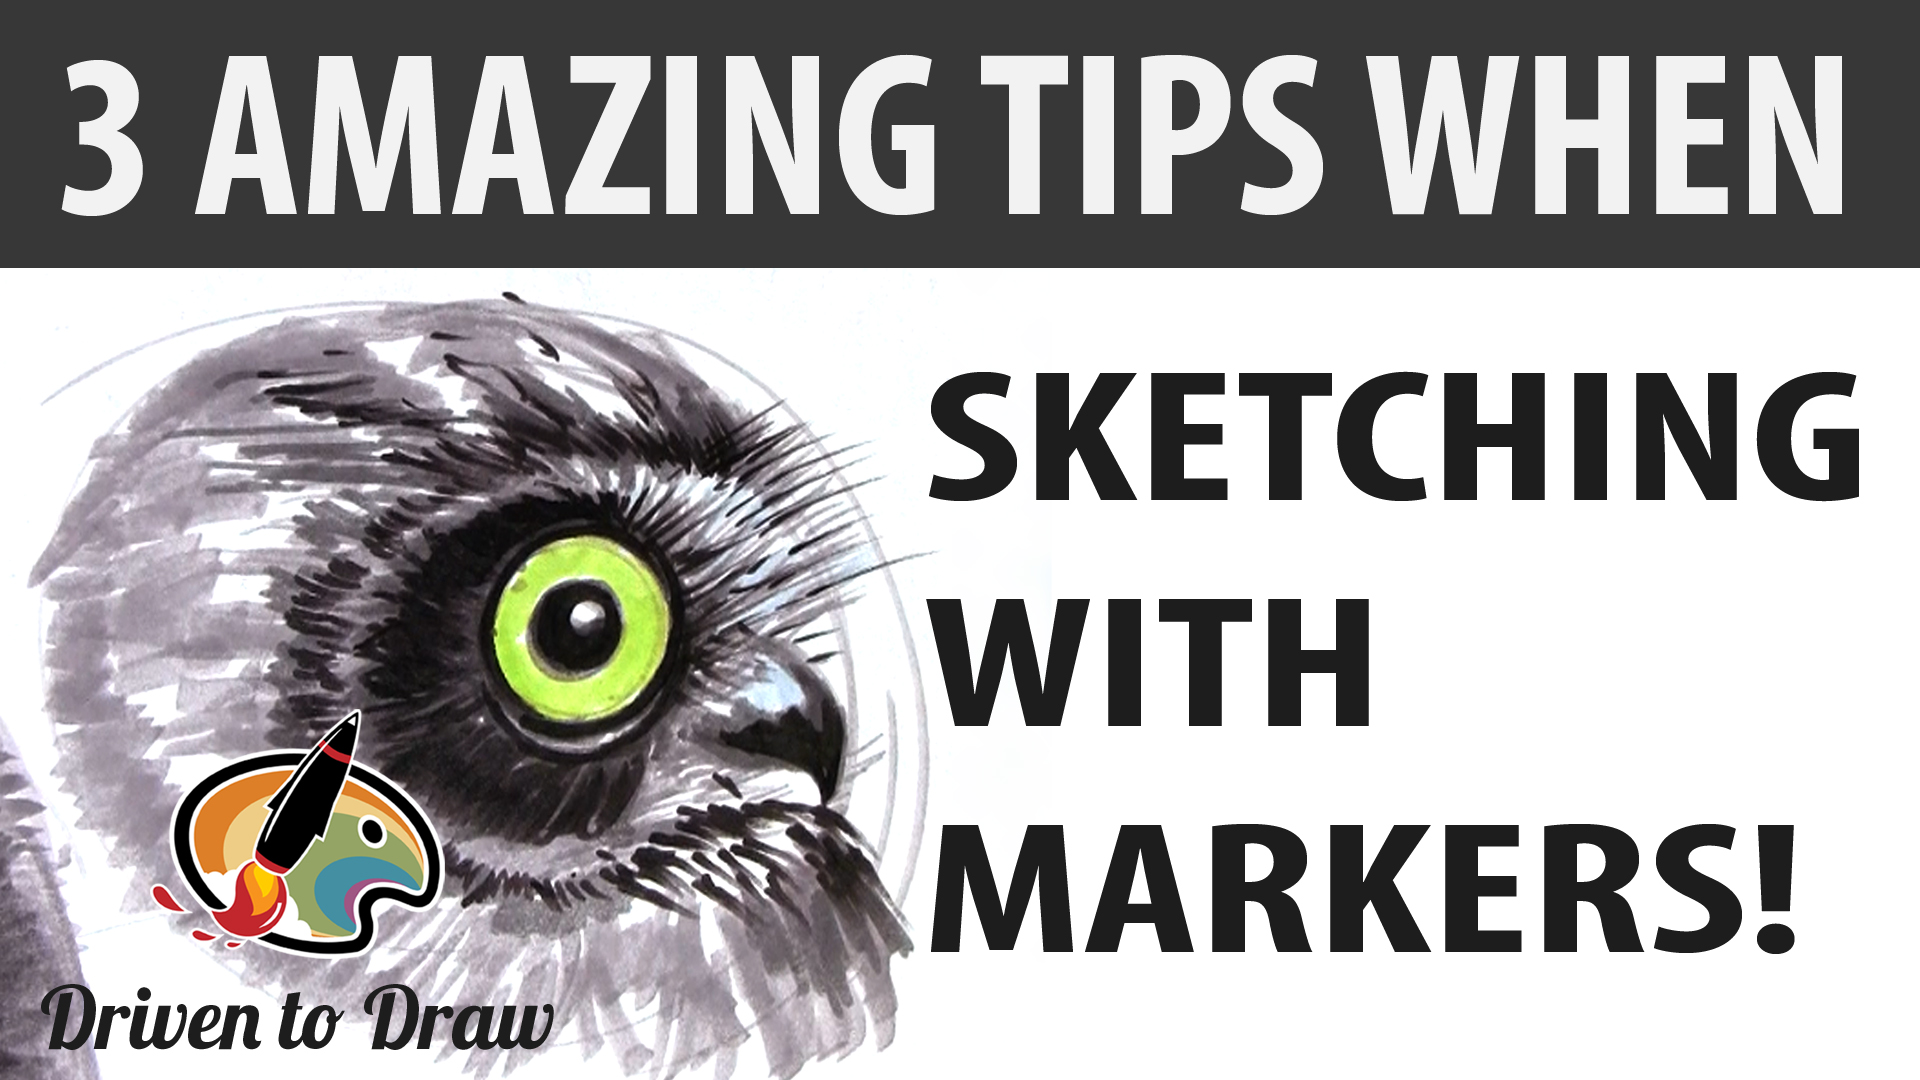 3 AMAZING TIPS WHEN SKETCHING WITH MARKERS